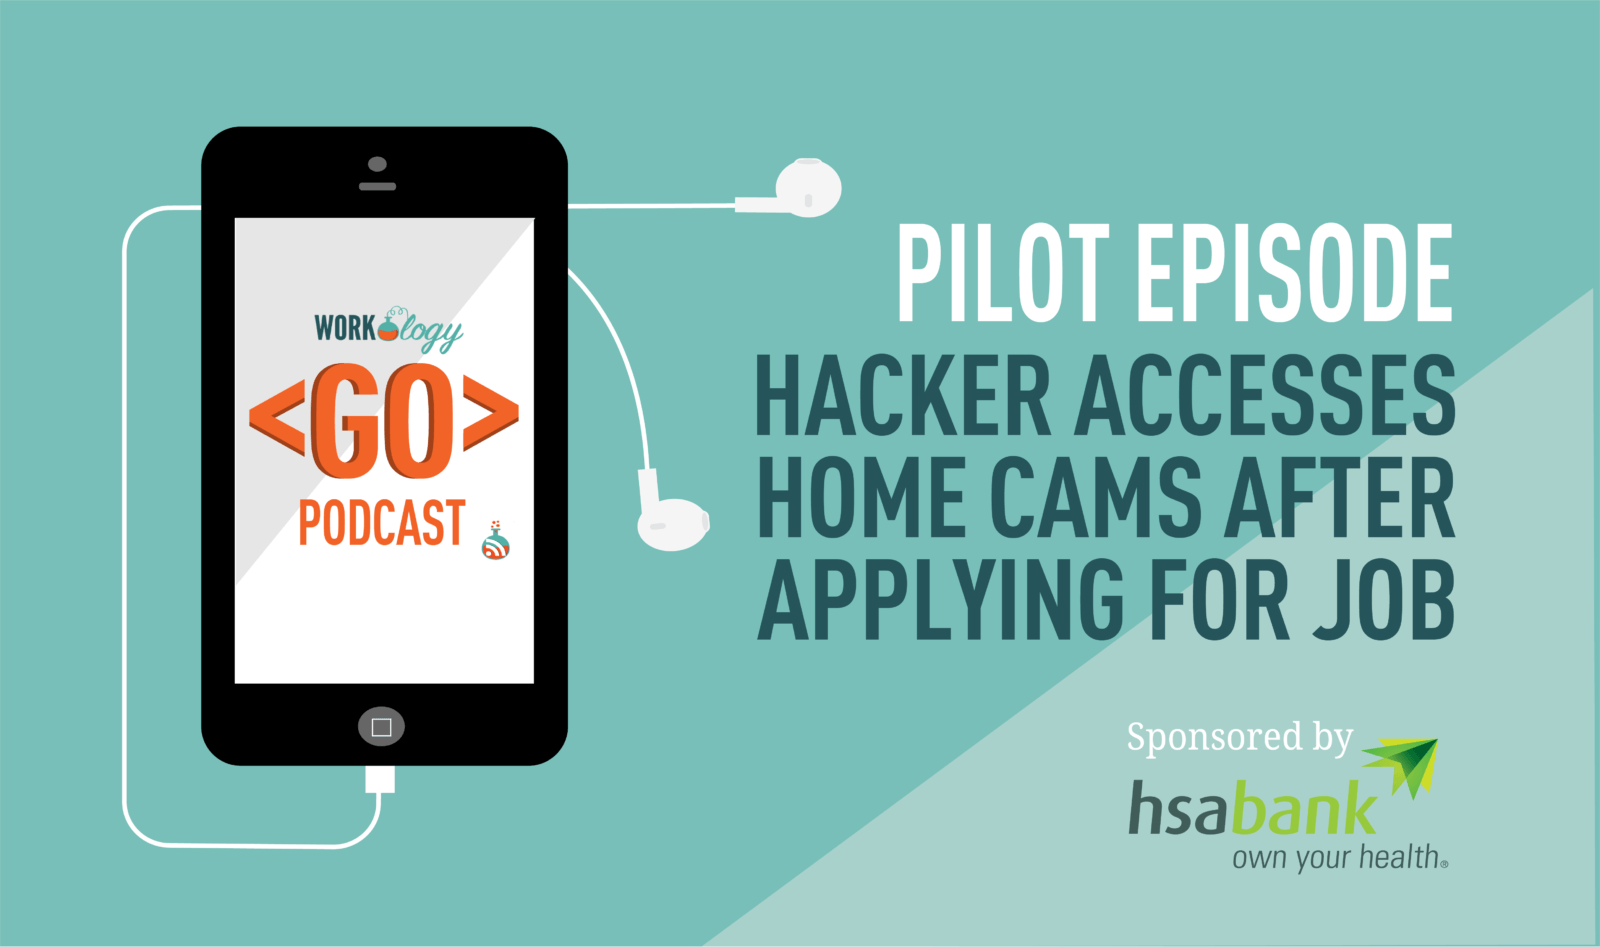 Pilot Episode – Hacker Accesses Home Cams After Applying for